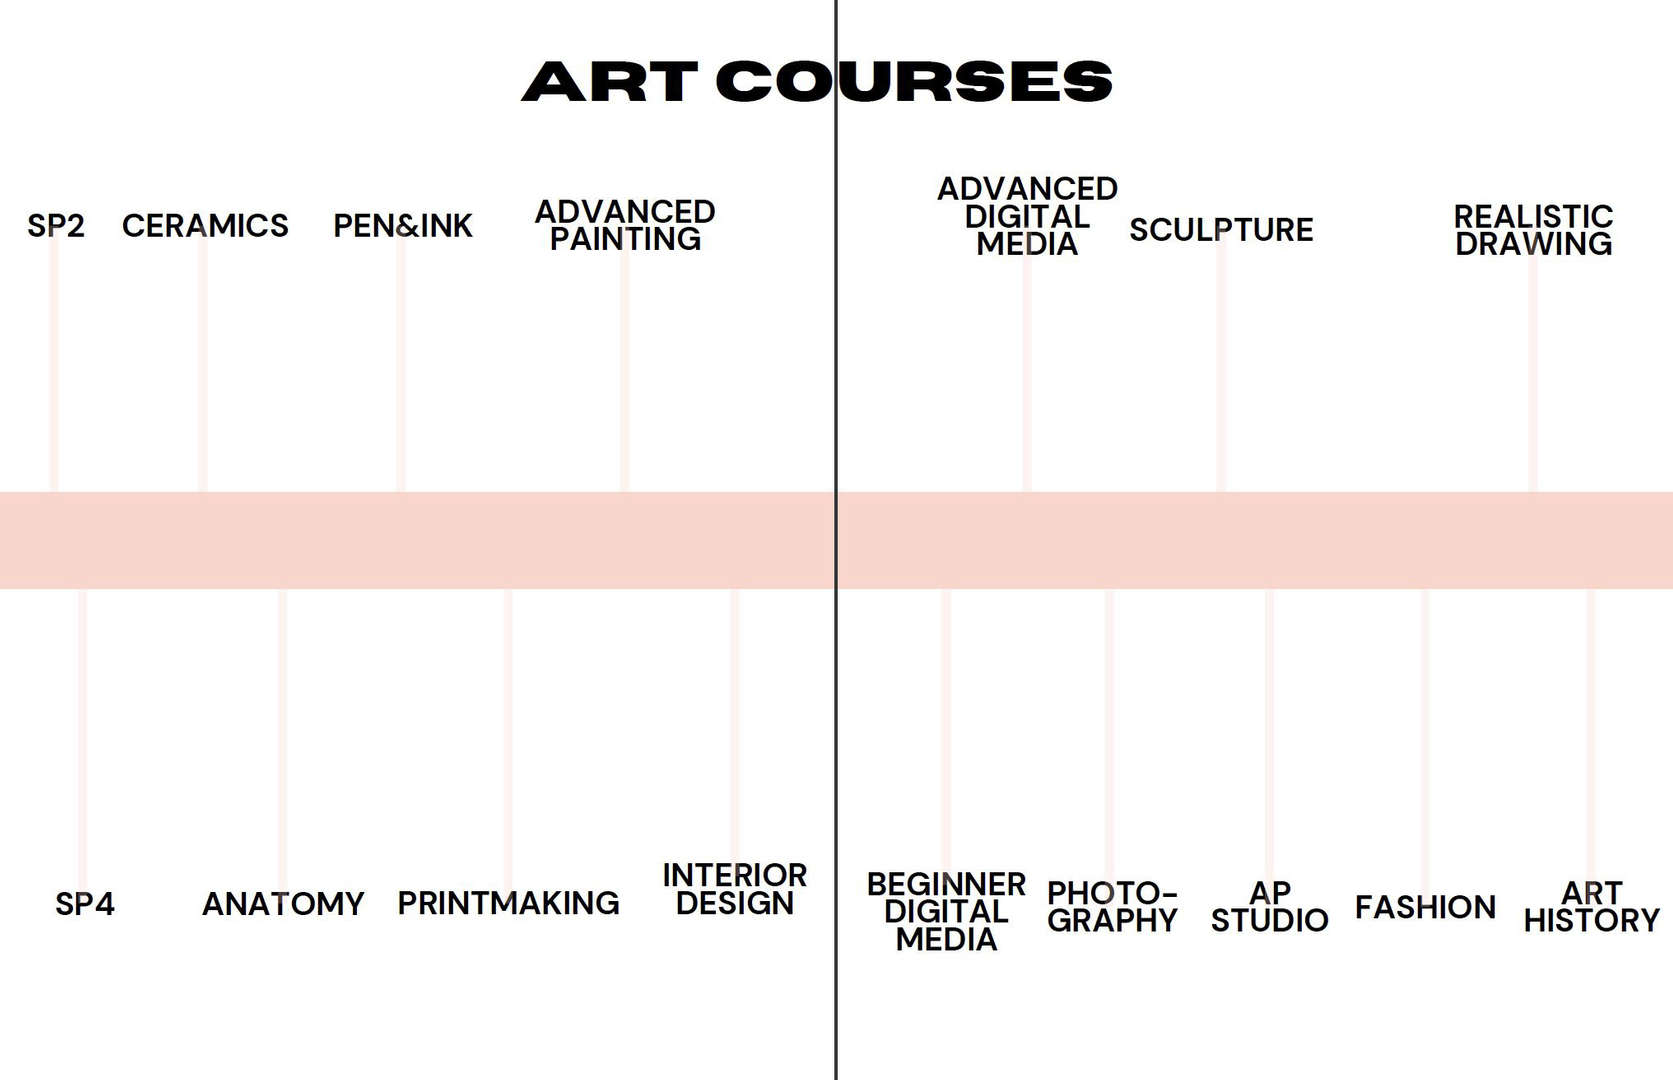 Listing of Fine Arts Courses